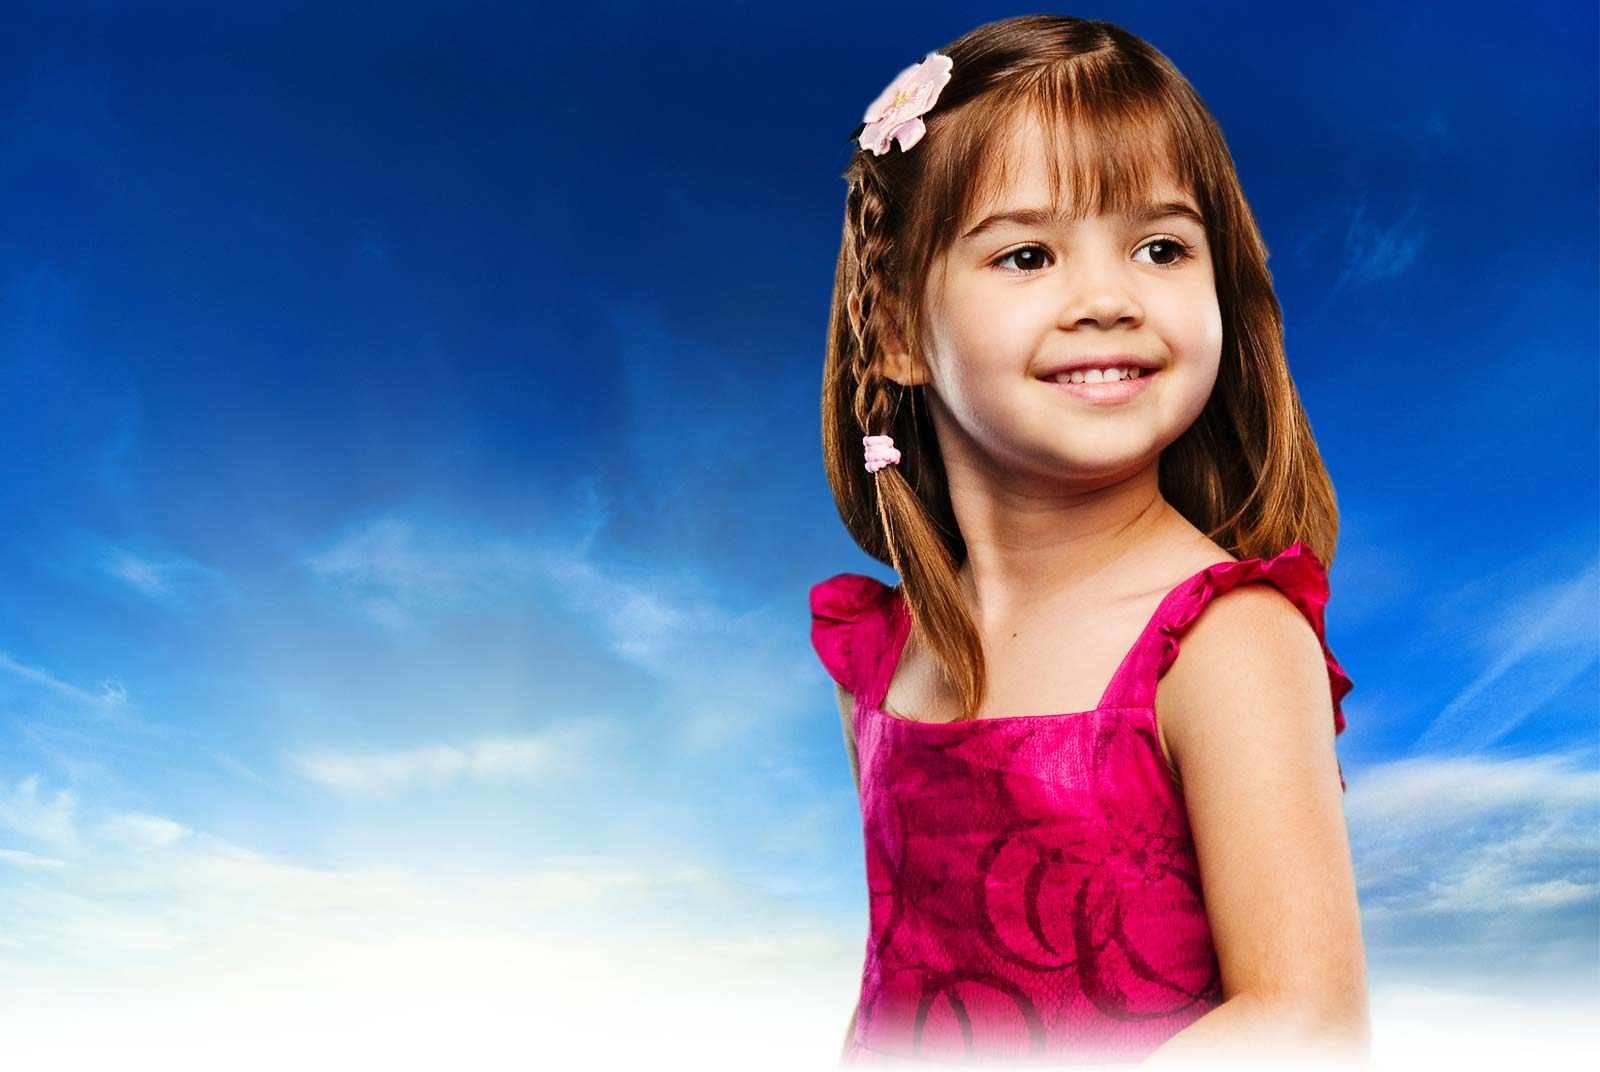 Baby Girl Background Wallpaper Kaitlyn Maher New Hd Wallpaper 2012 2013 Cute Wallpapers